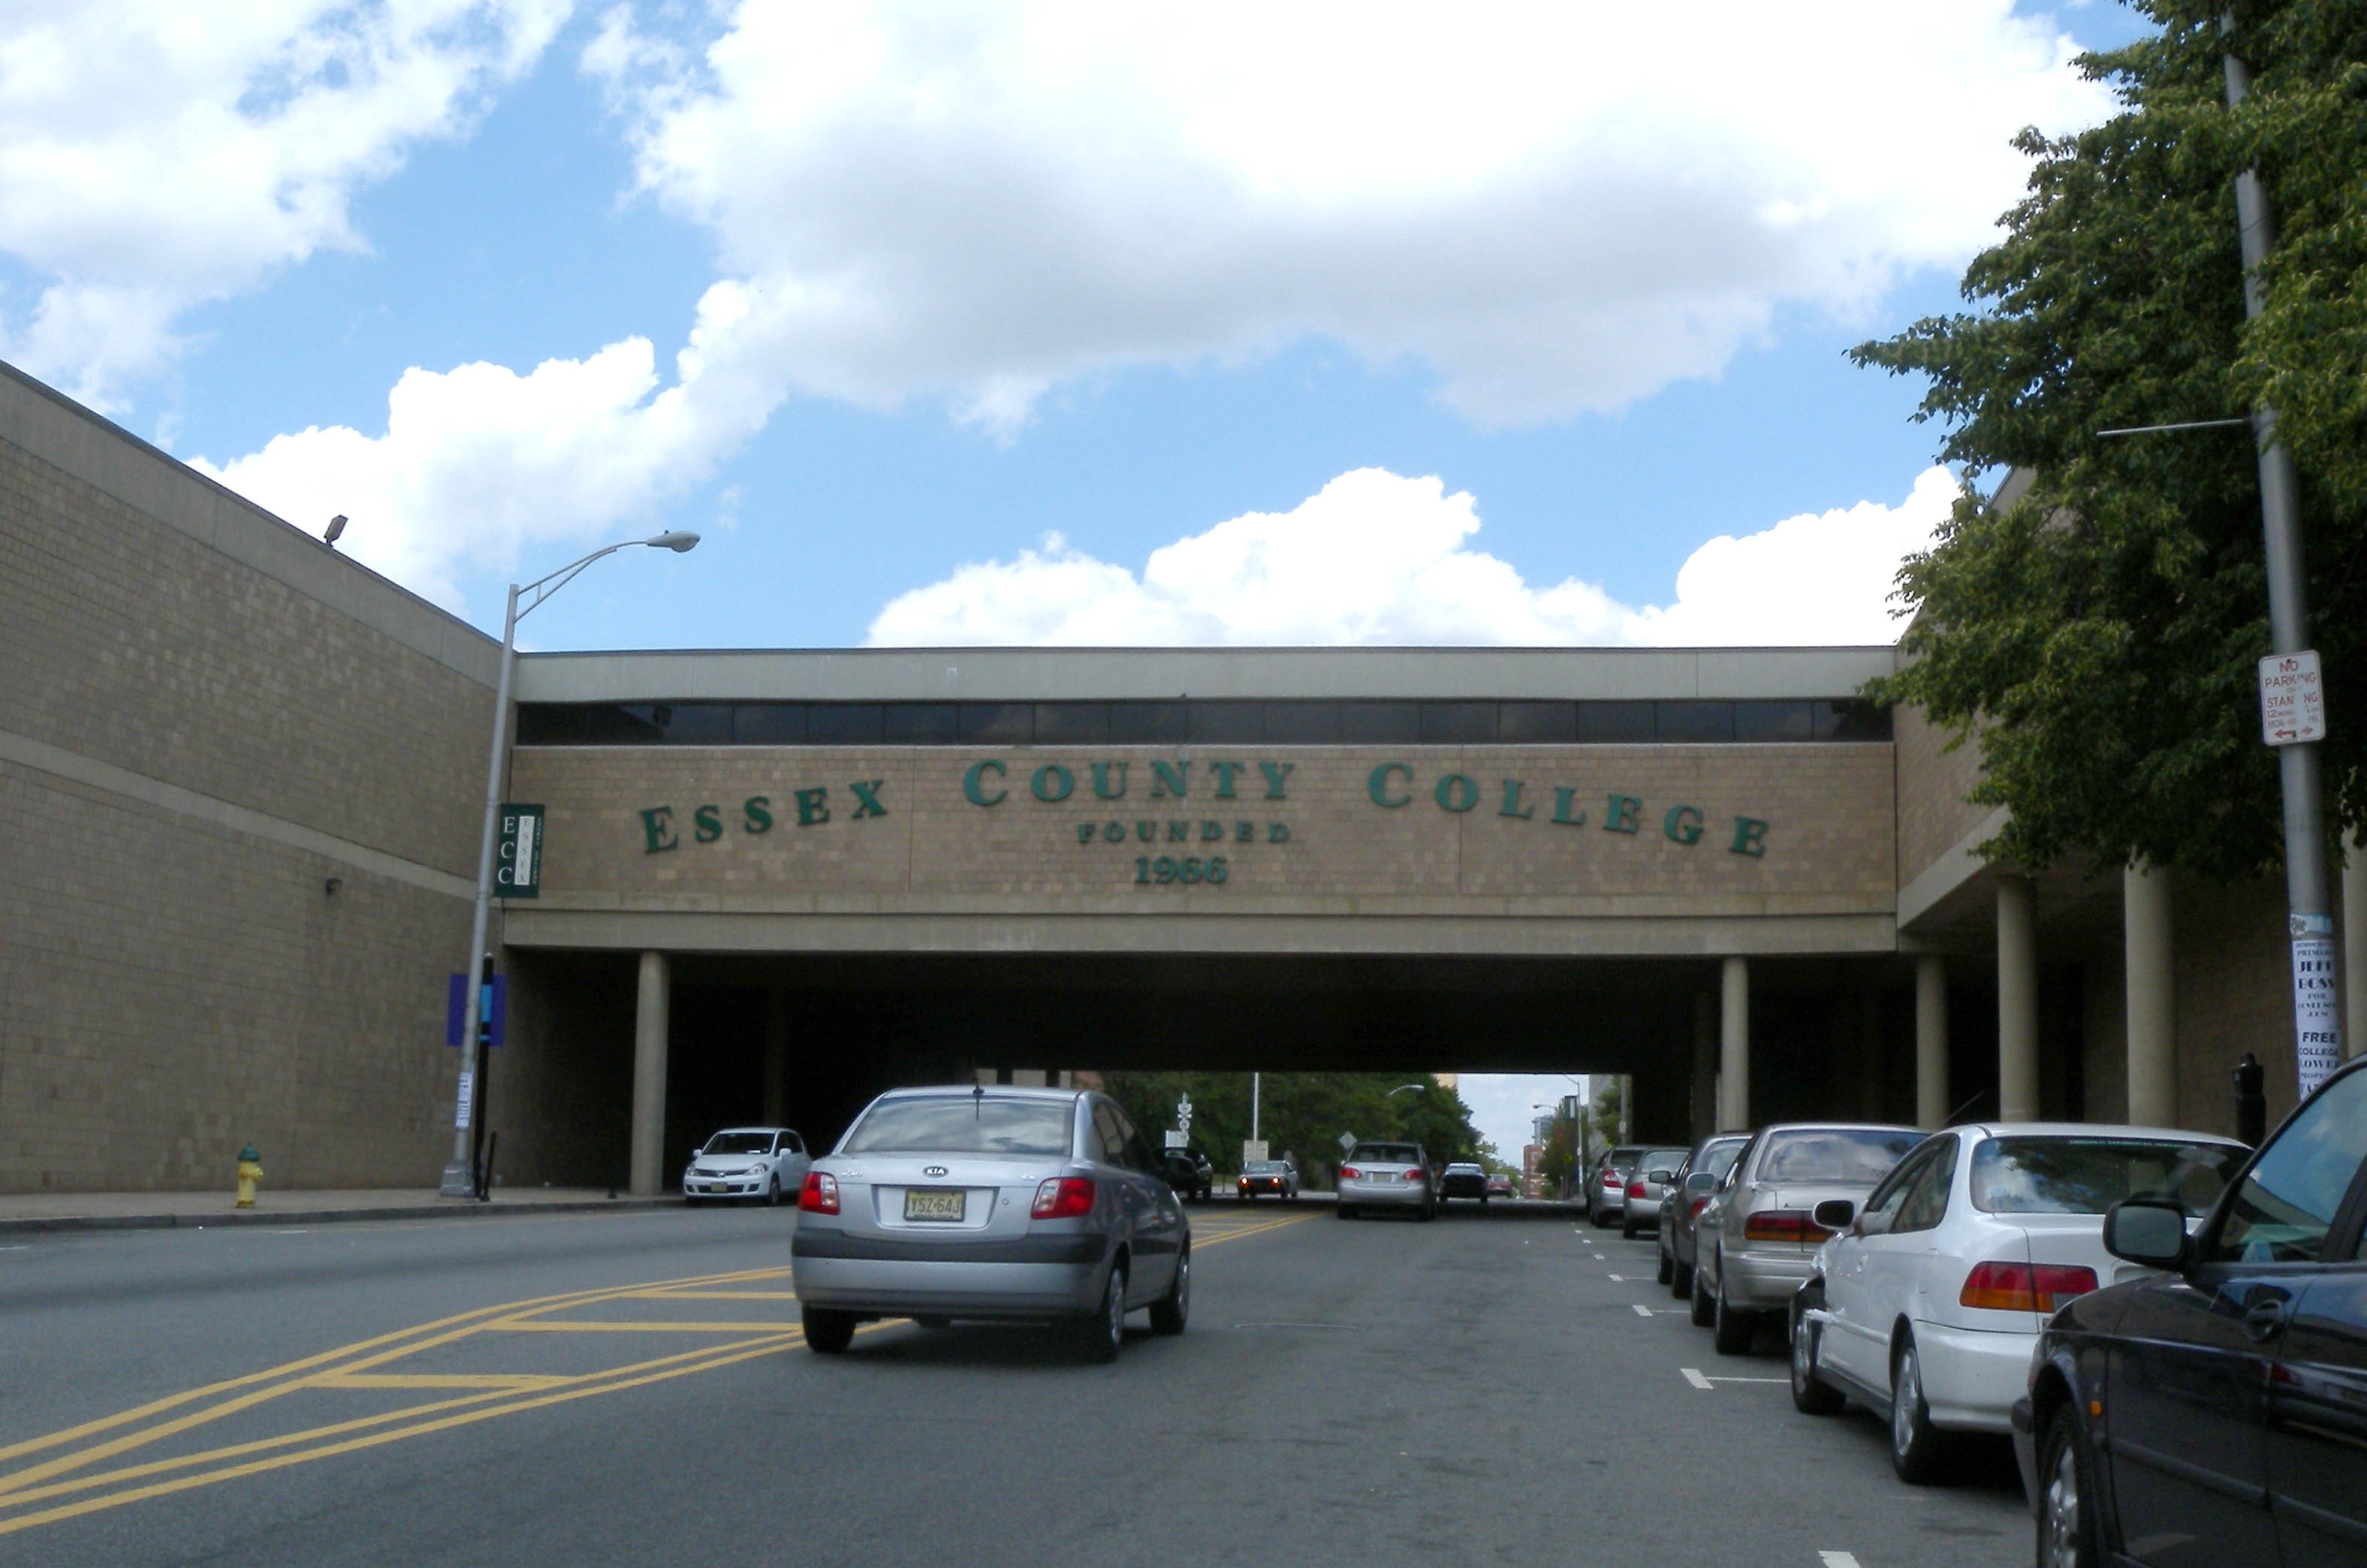 Essex County College Wikipedia